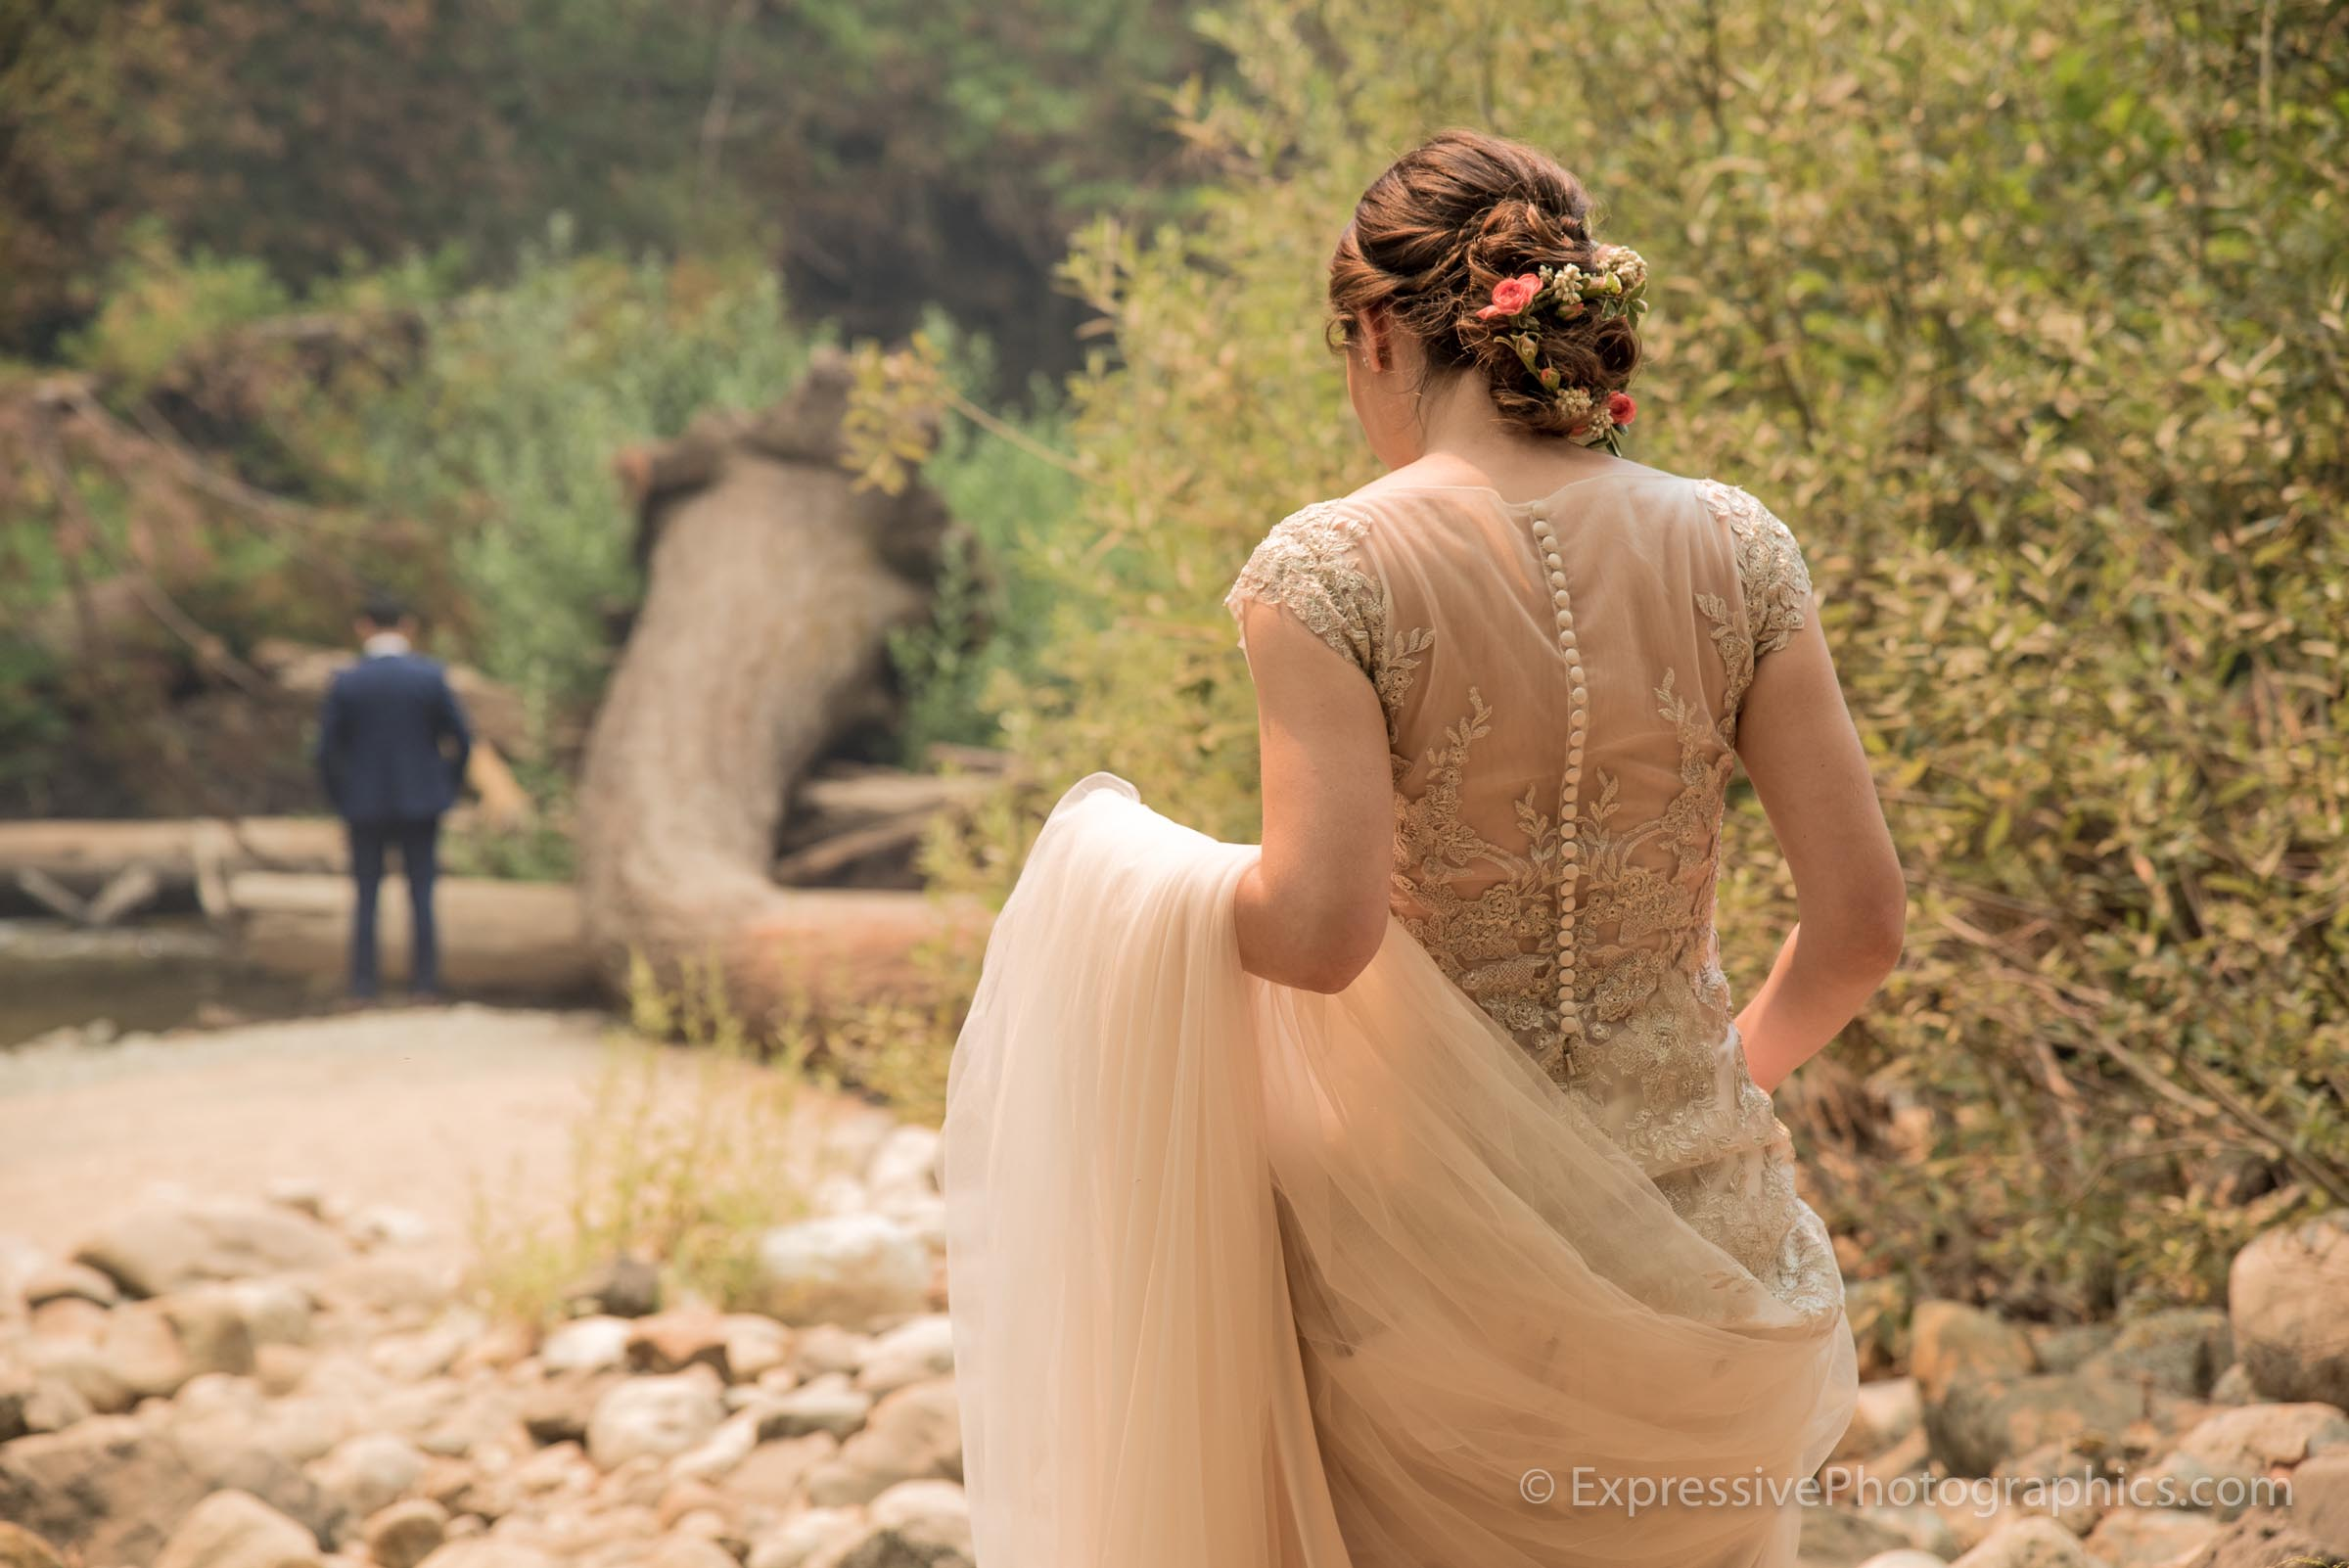 Expressive-Photographics-first-look-wedding-couple-big-sur-20160723_0253.jpg